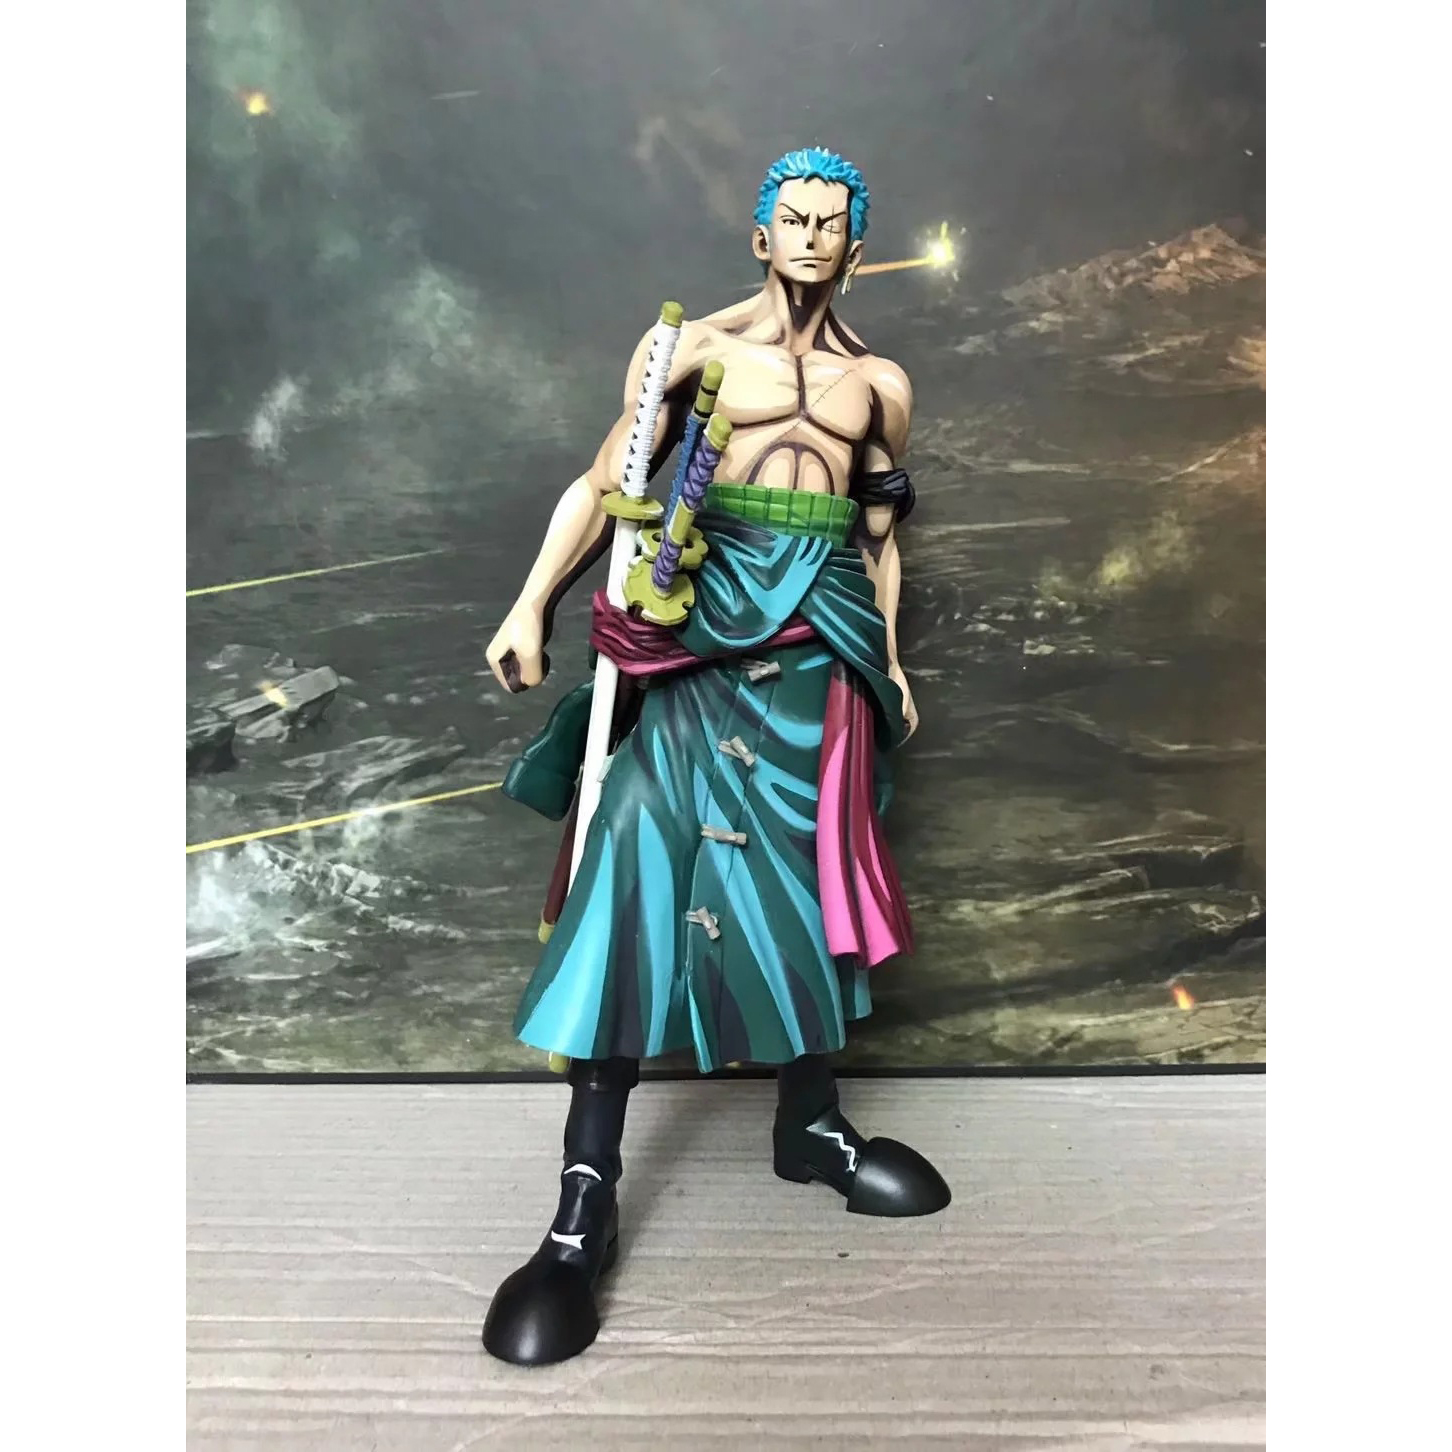 XINDUPLAN One Piece Anime Roronoa Zoro MSP Color comic Onepiece New World Action Figure Toy 25cm PVC Kid Gift Collect Model 1108 one piece action figure roronoa zoro led light figuarts zero model toy 200mm pvc toy one piece anime zoro figurine diorama